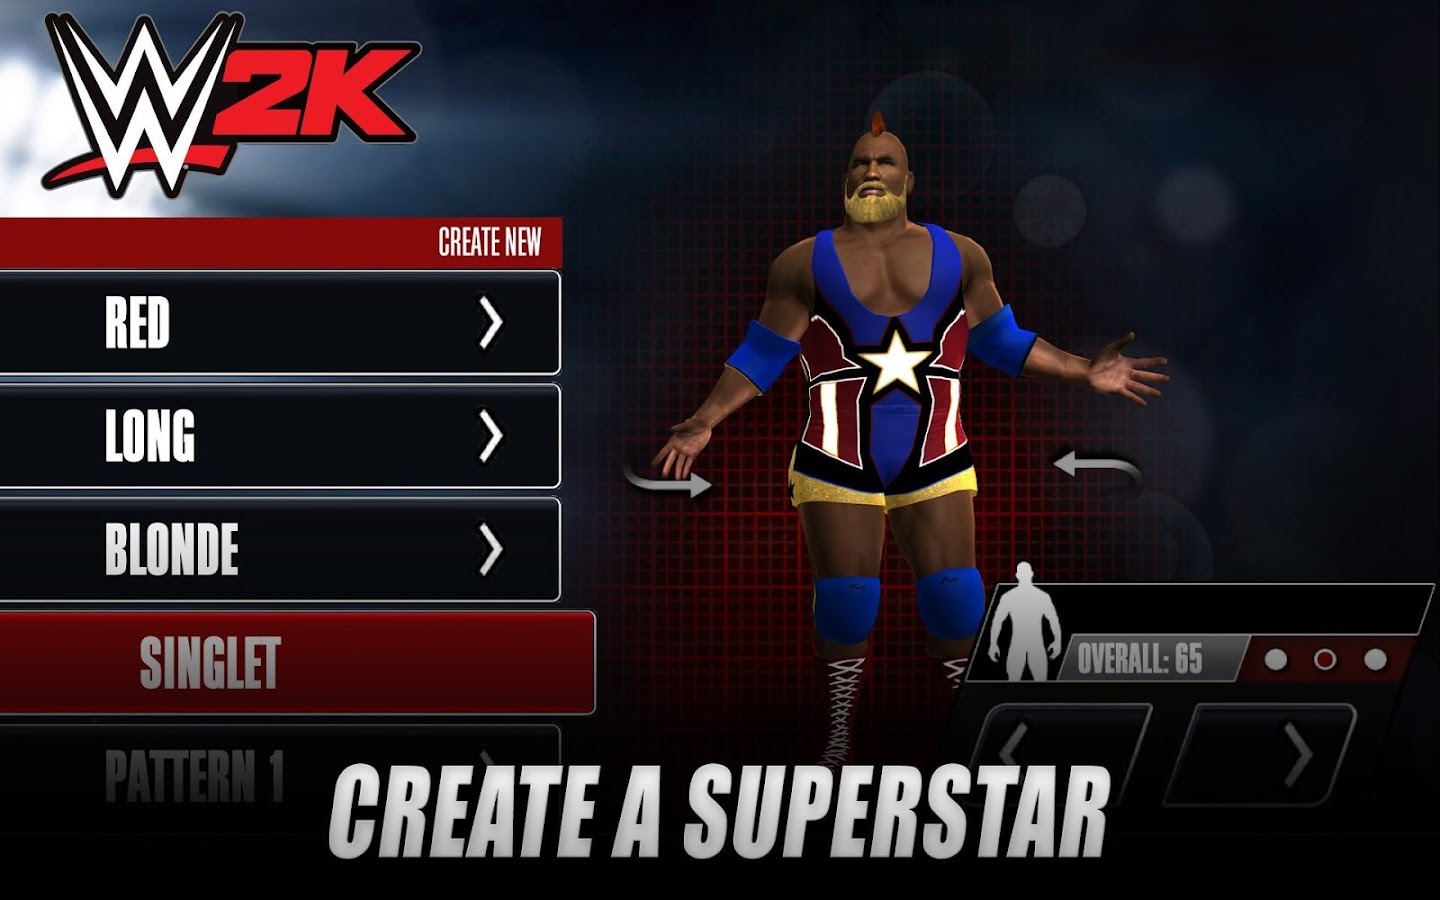 WWE 2K - Androi...